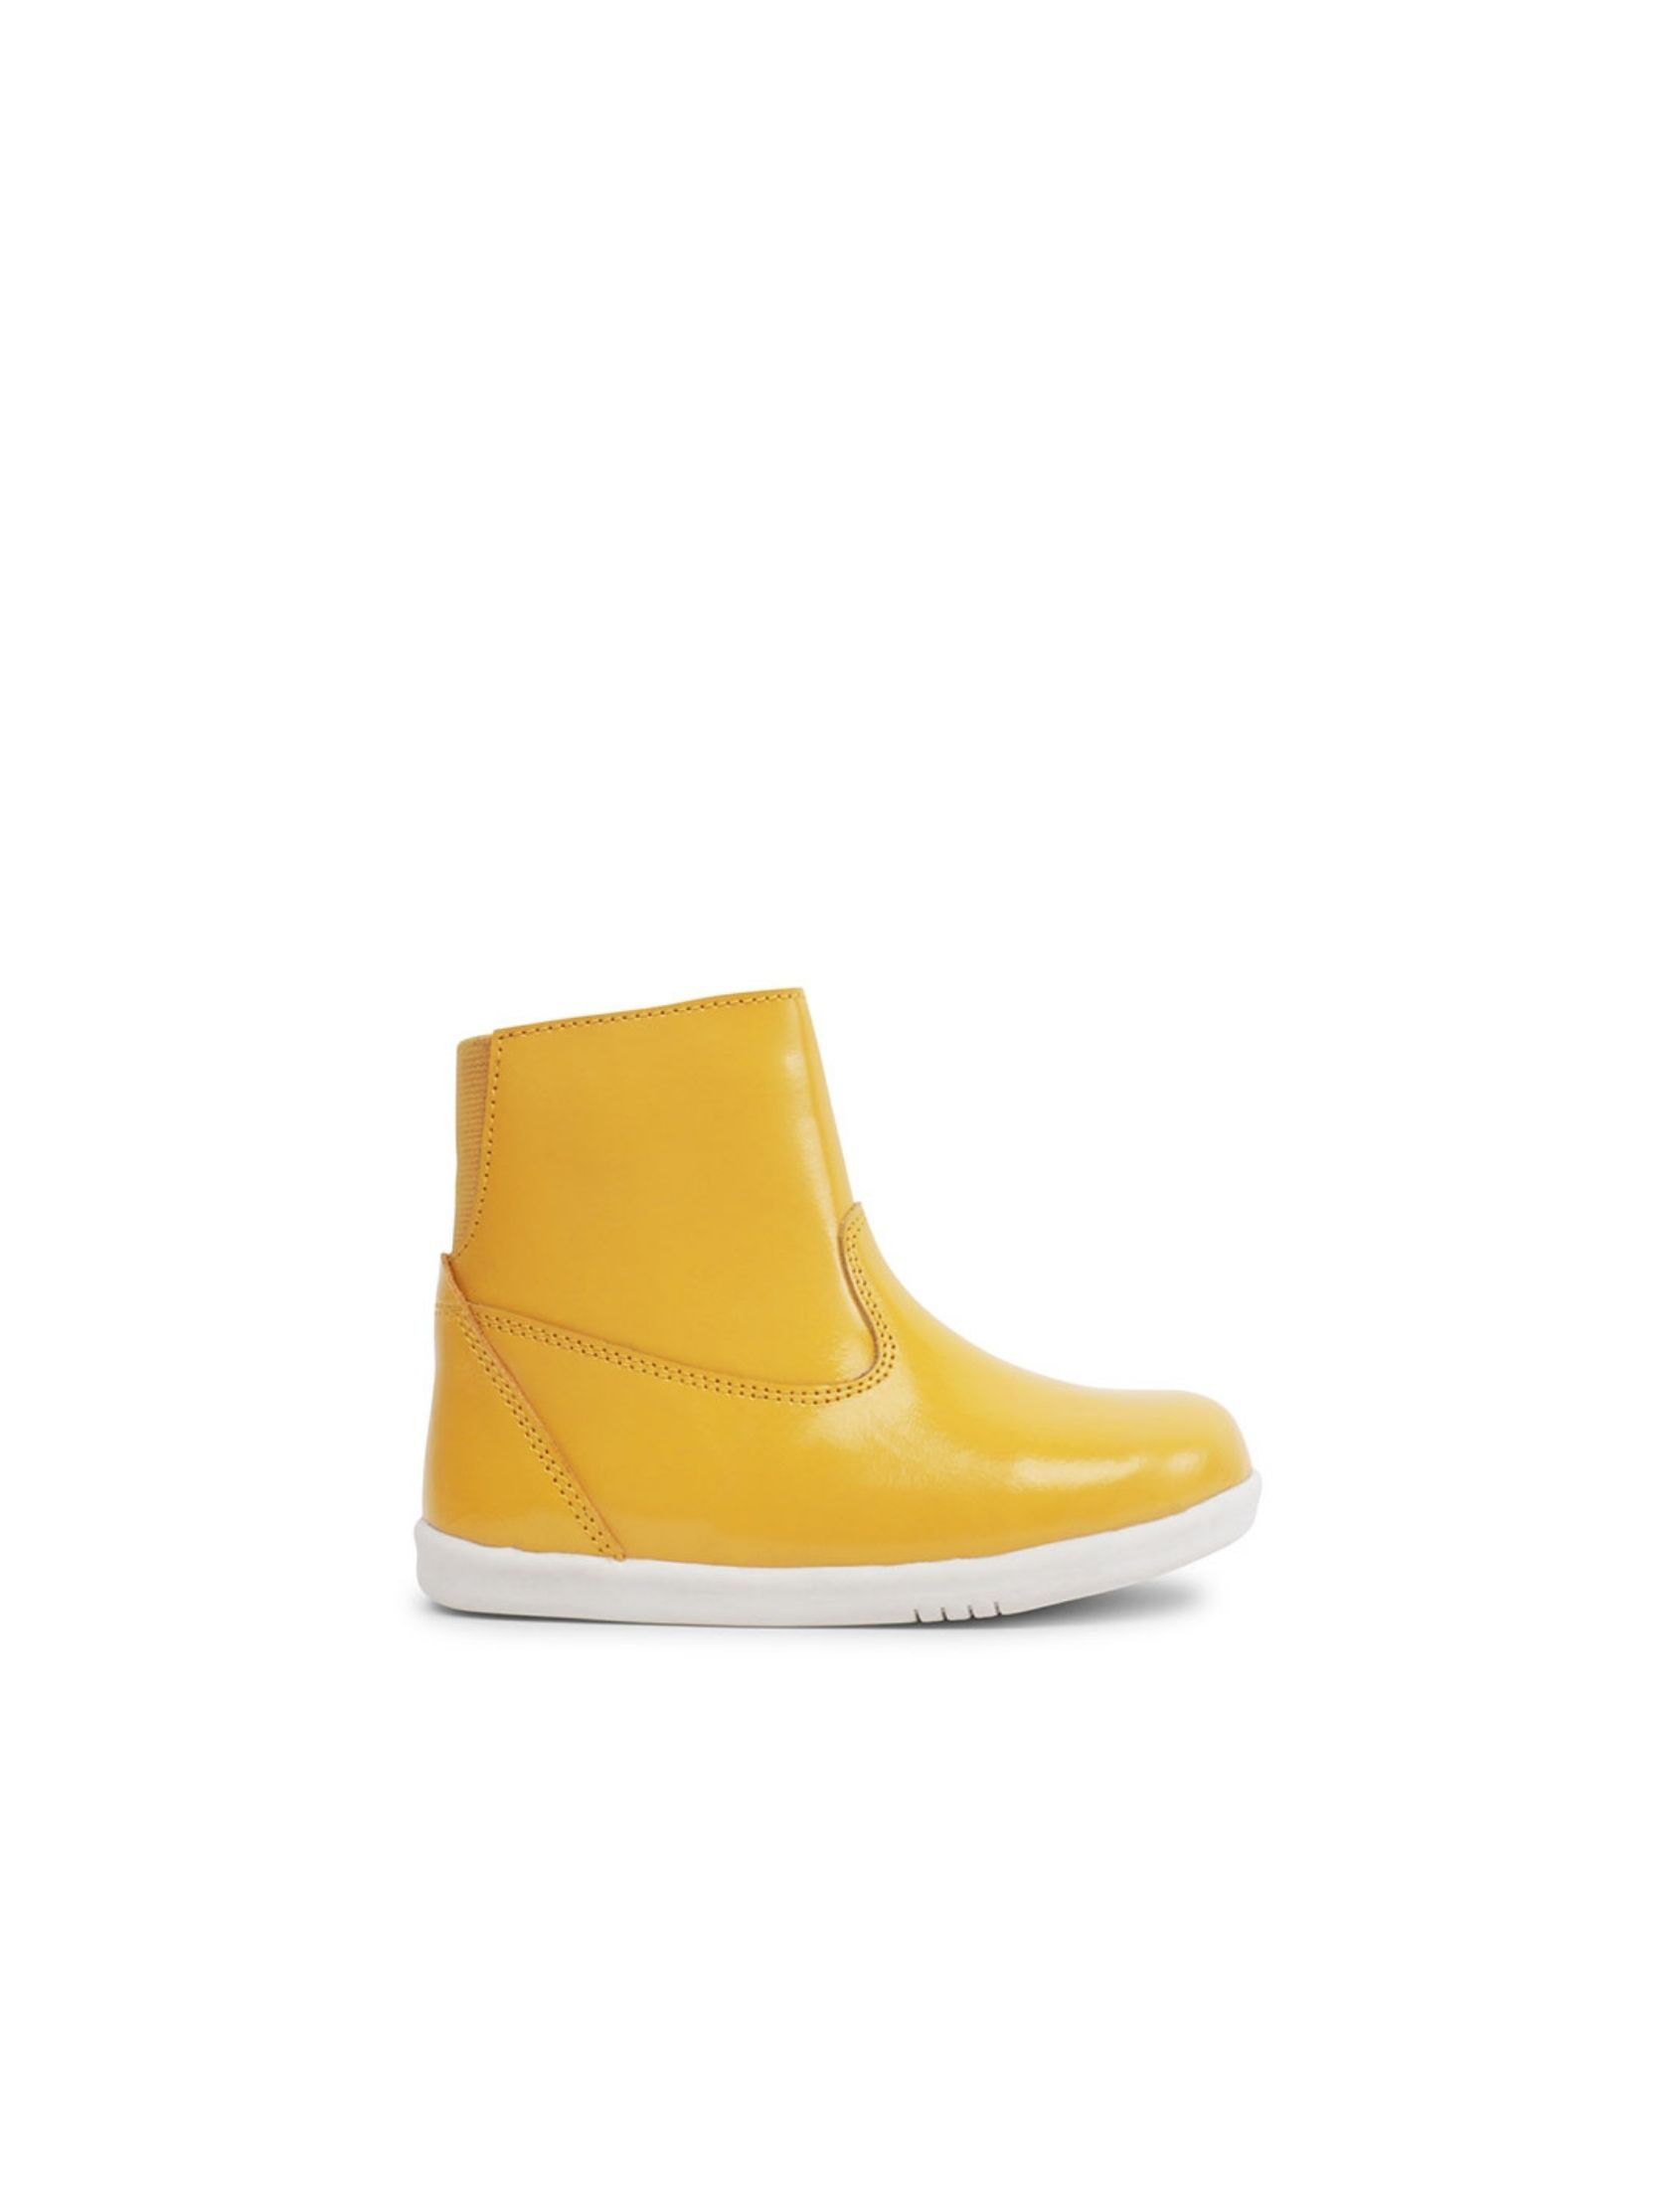 botin iwalk paddington yellow con suela blanca